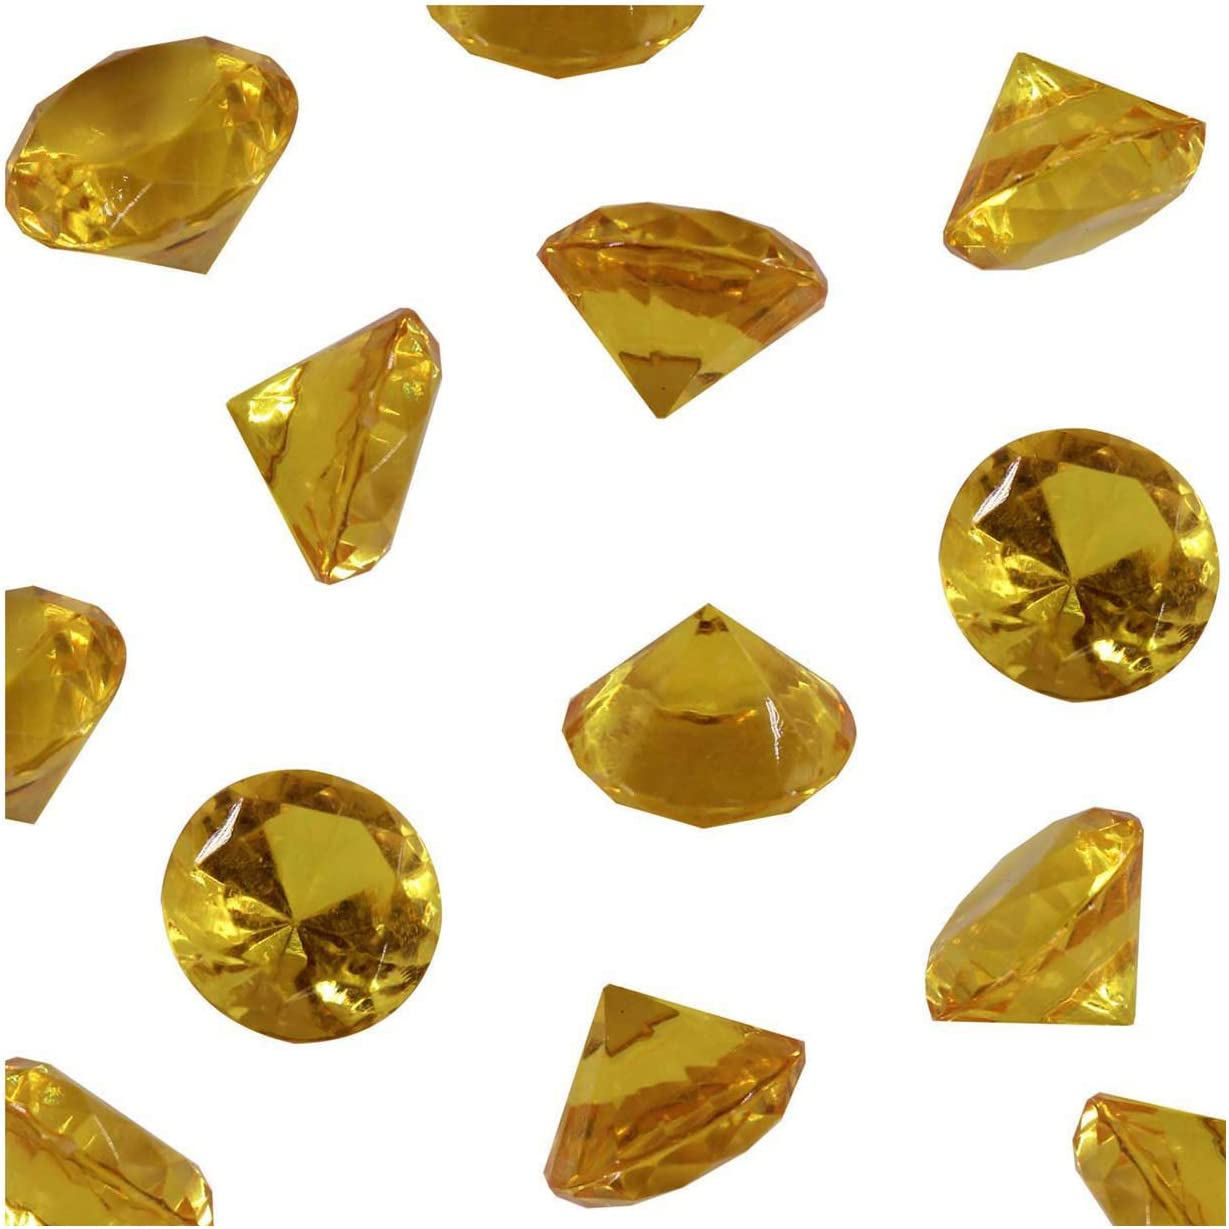 Gold Acrylic Diamond Vase Fillers 1 Pound - 240 pcs 3/4 Inch Wedding Party Event Banquet Birthday Decoration Crystals Gem Table Scatters (Gold, 240 pcs)